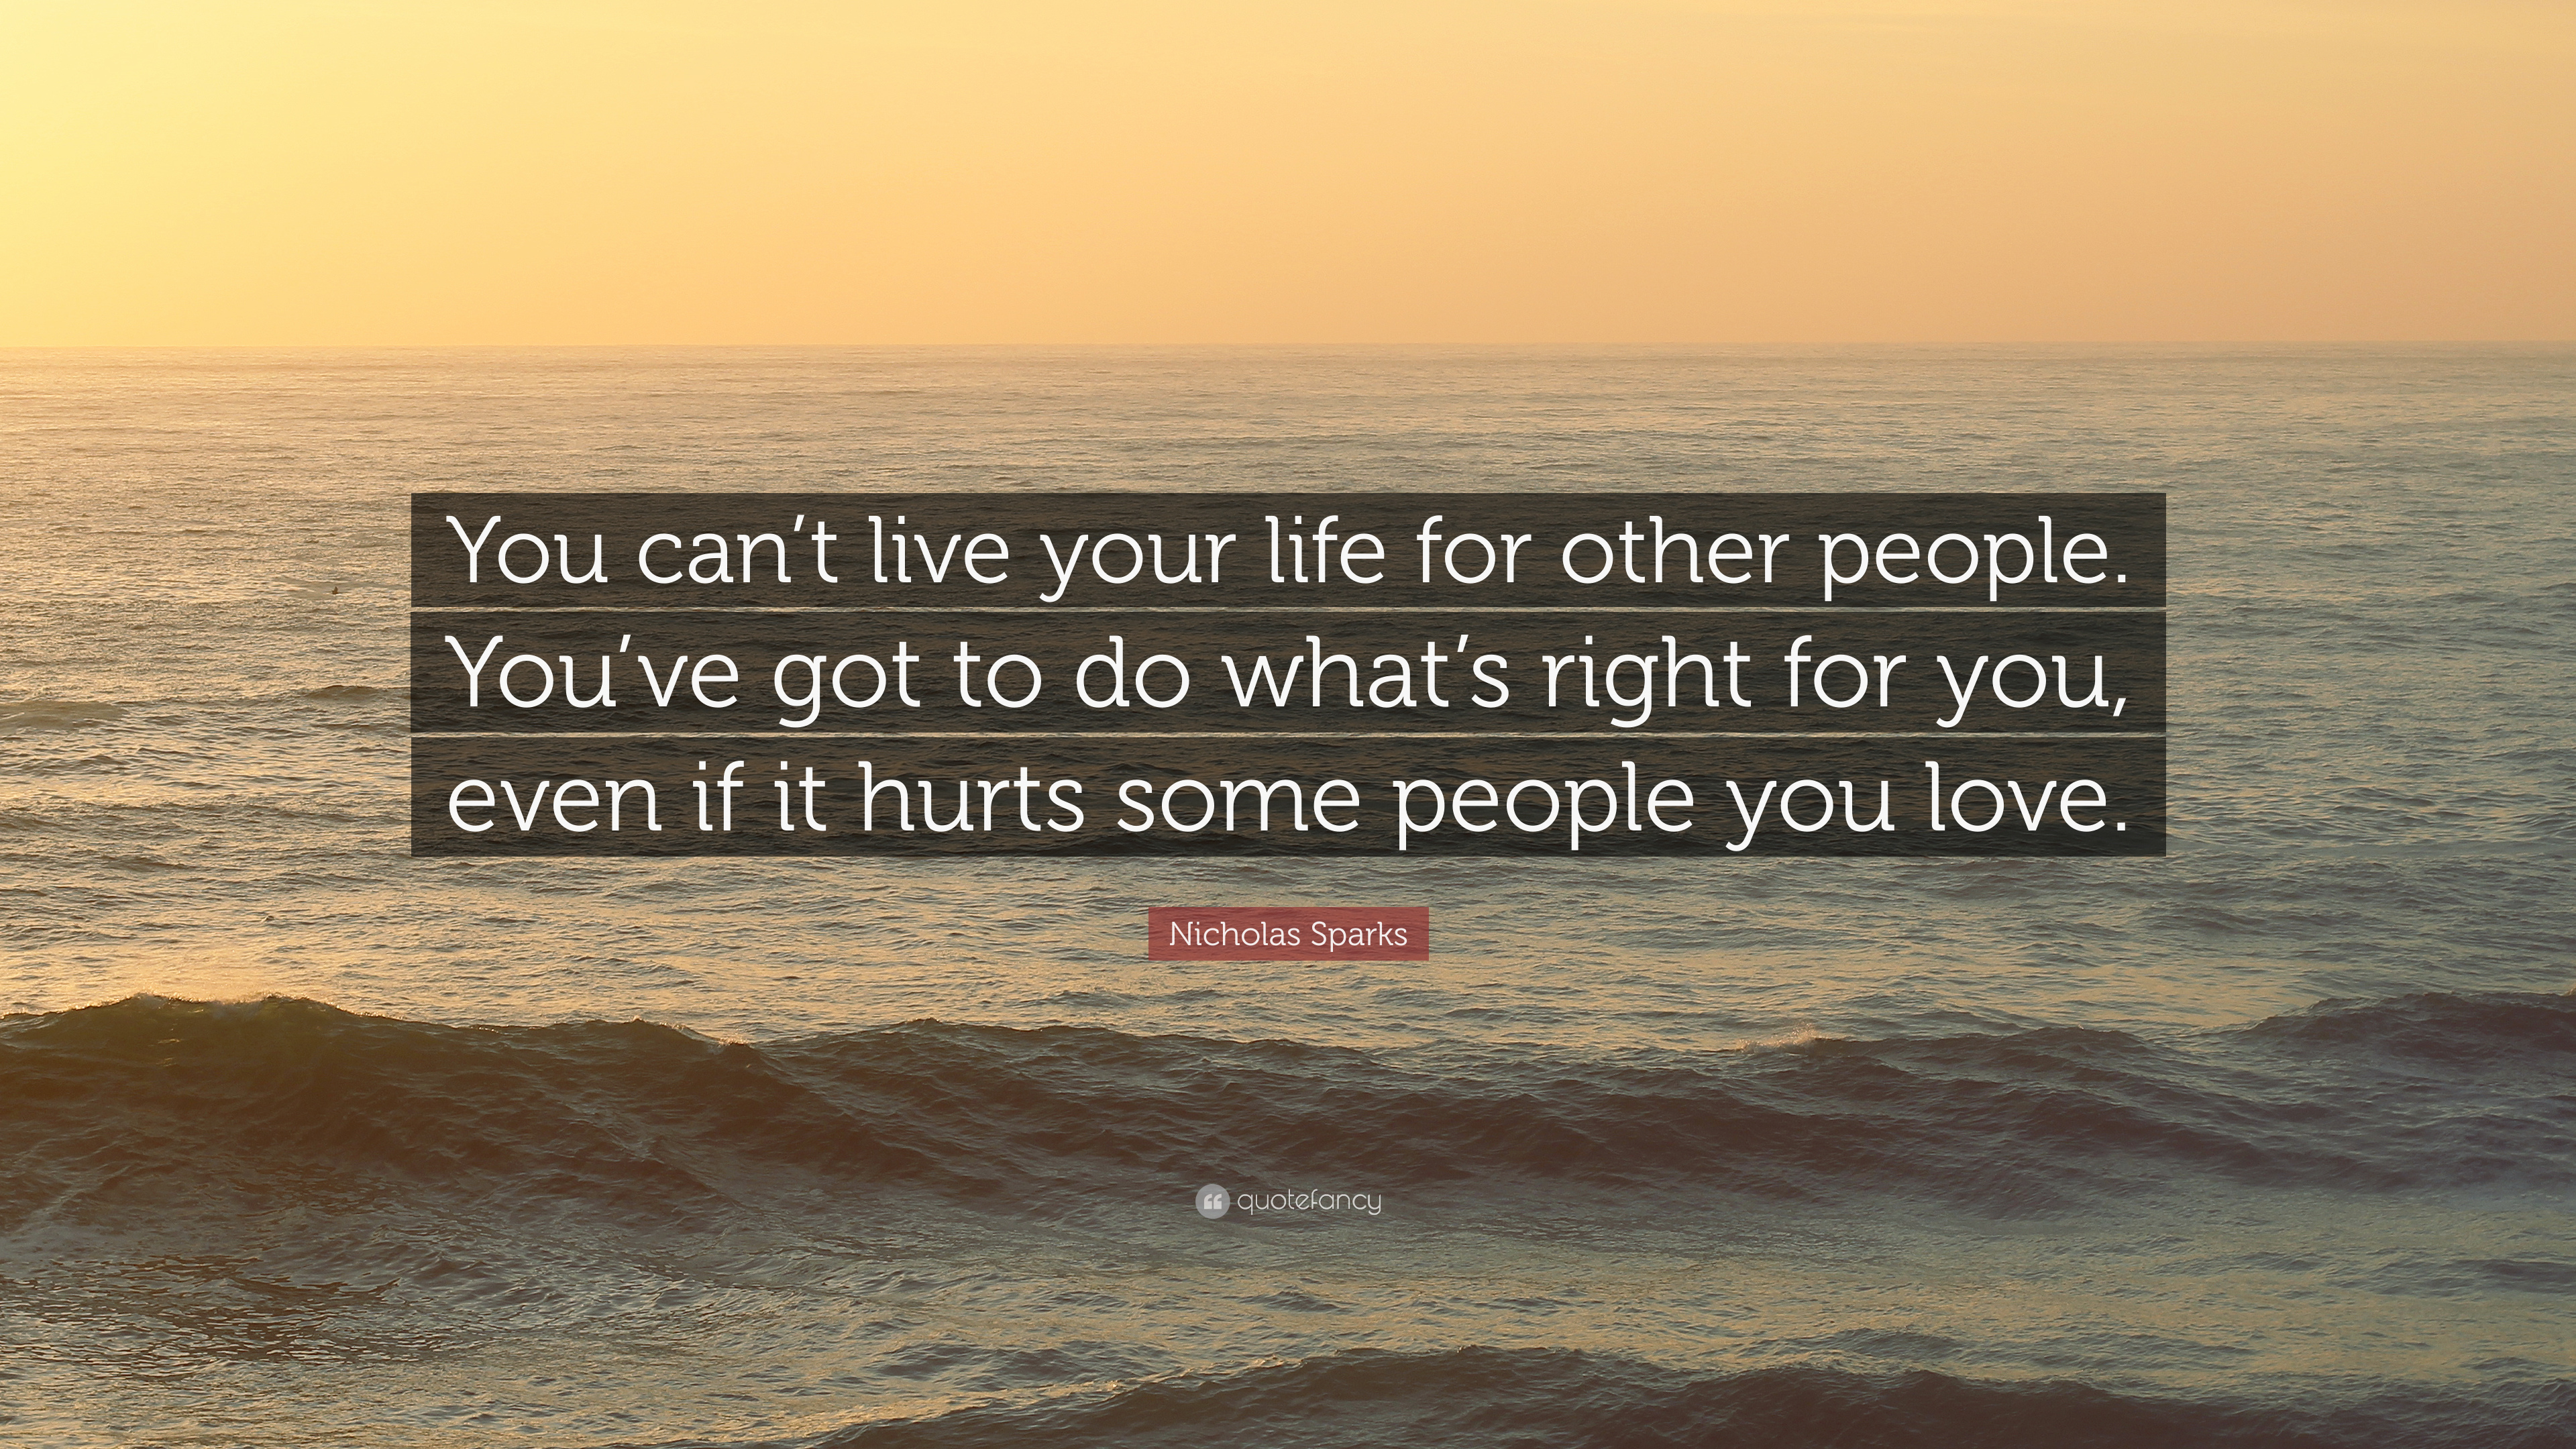 Nicholas Sparks Quote You Cant Live Your Life For Other People